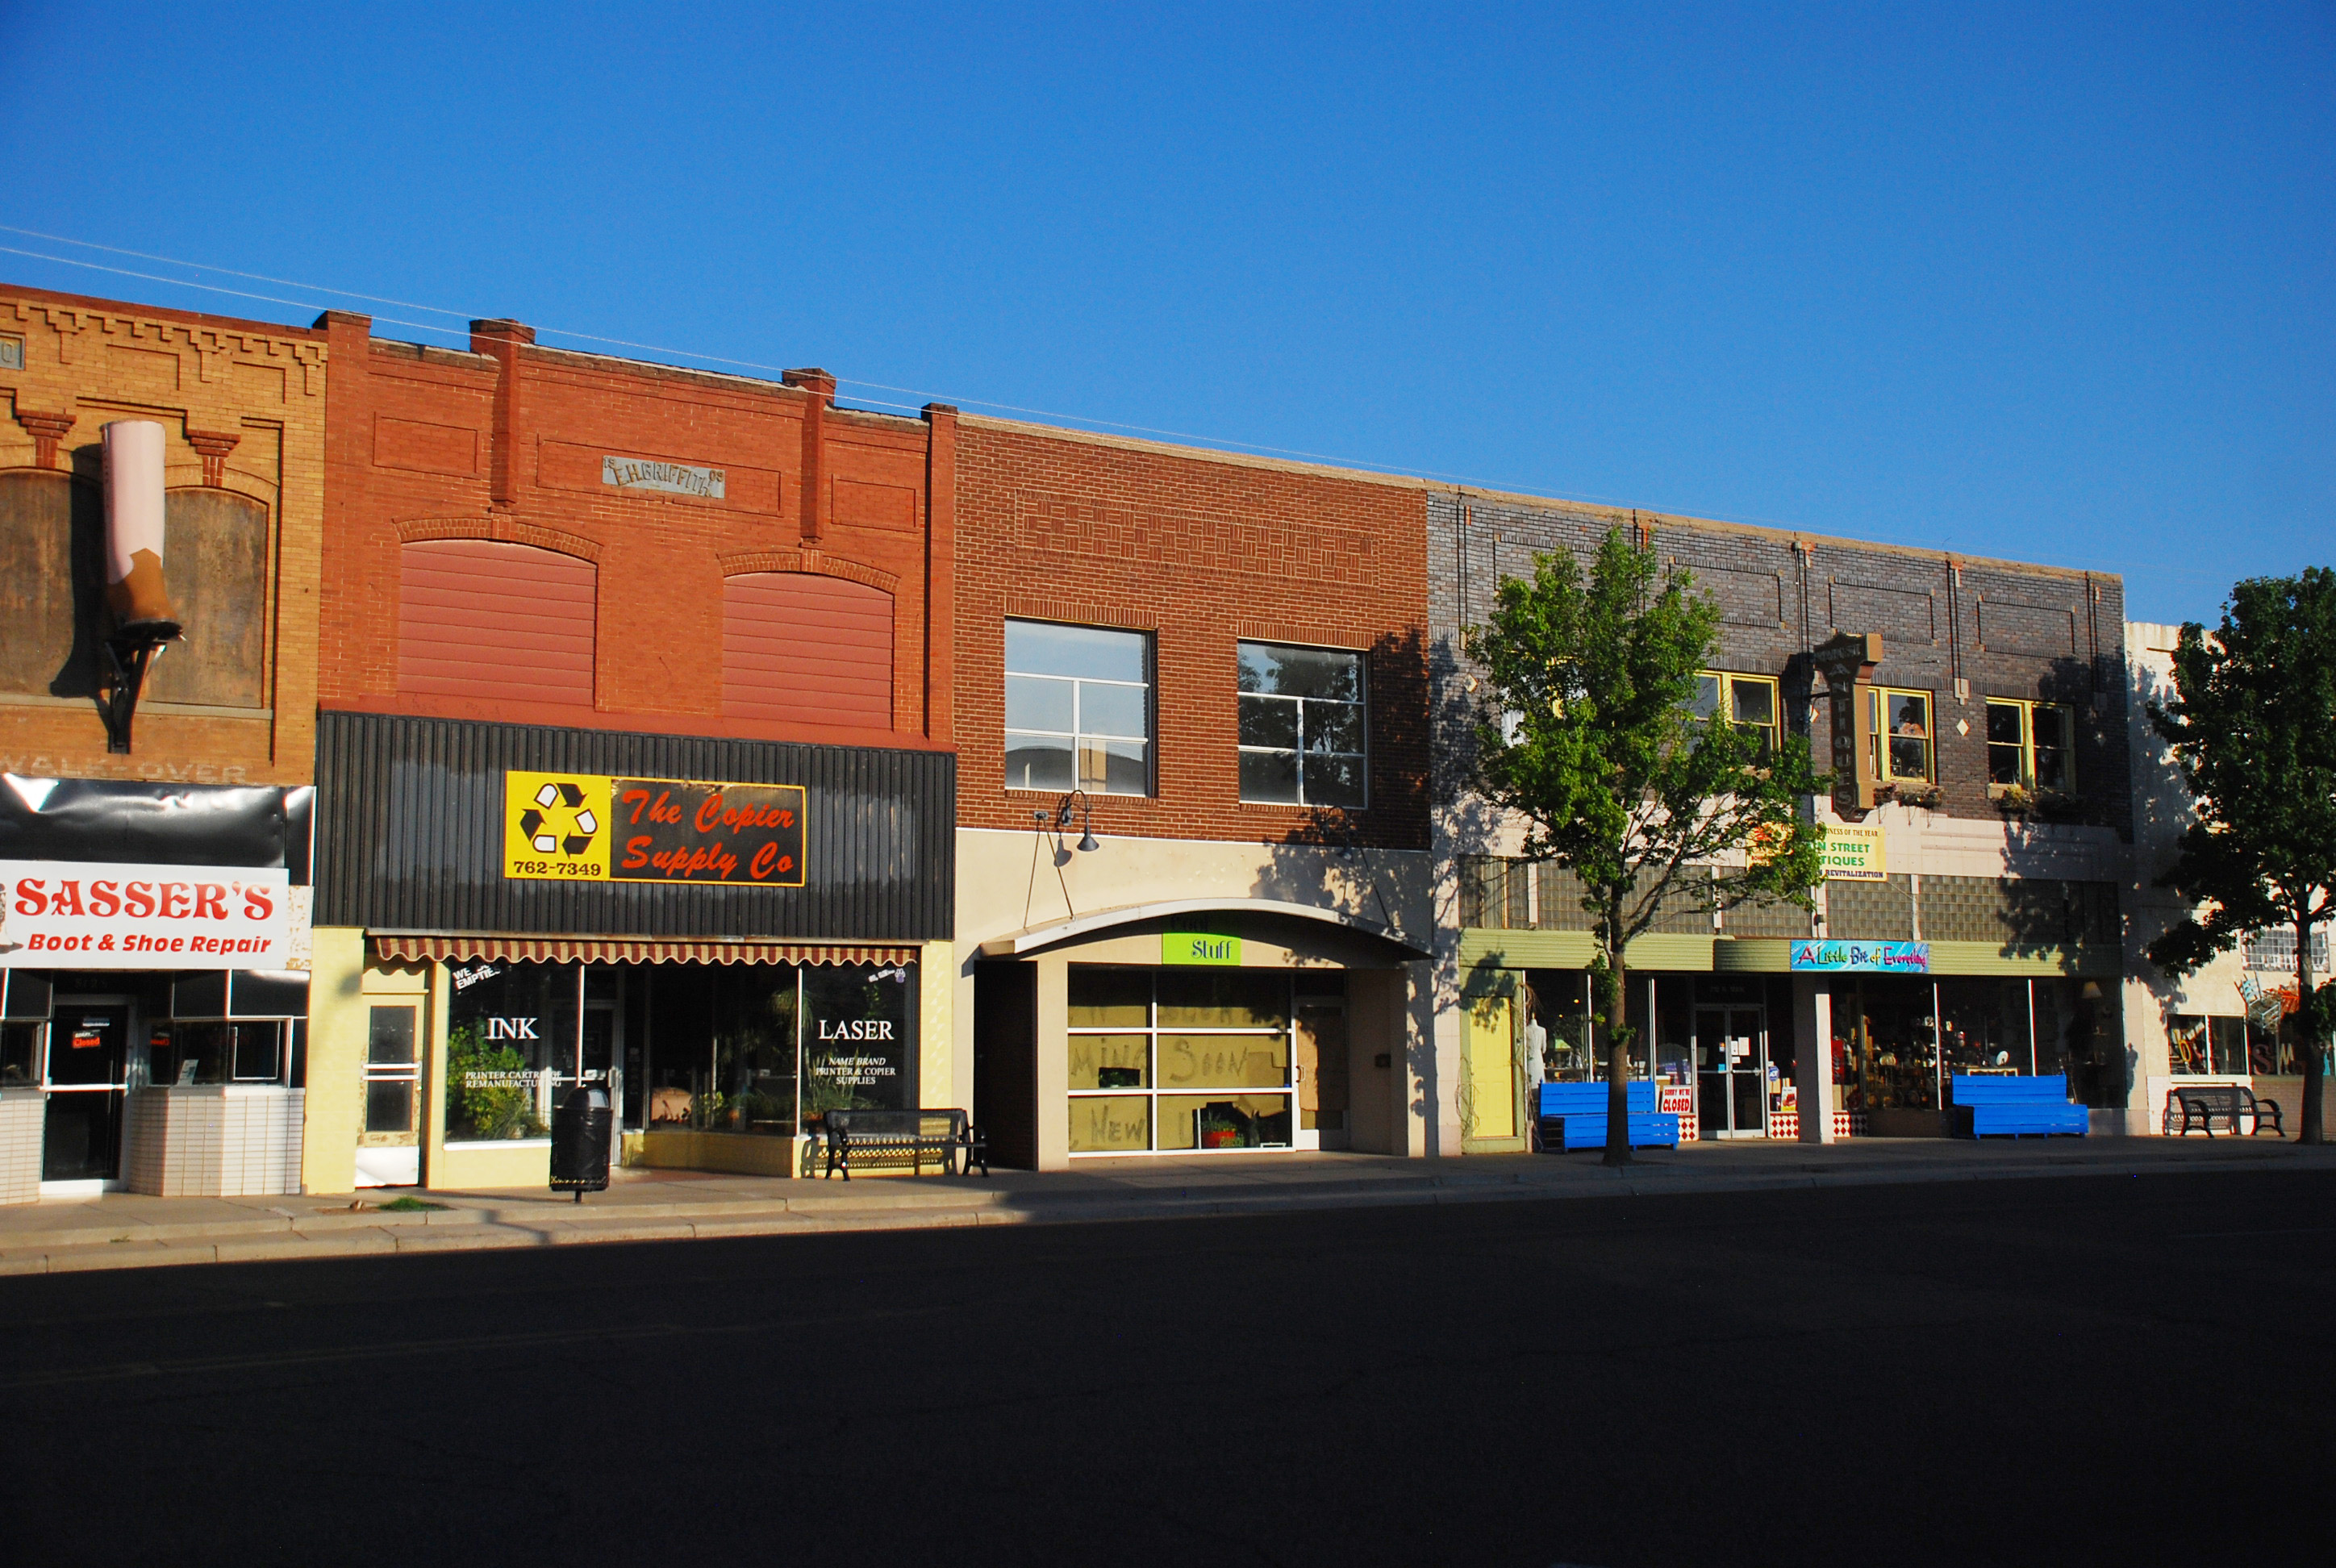 A photo of historic downtown Clovis, New Mexico